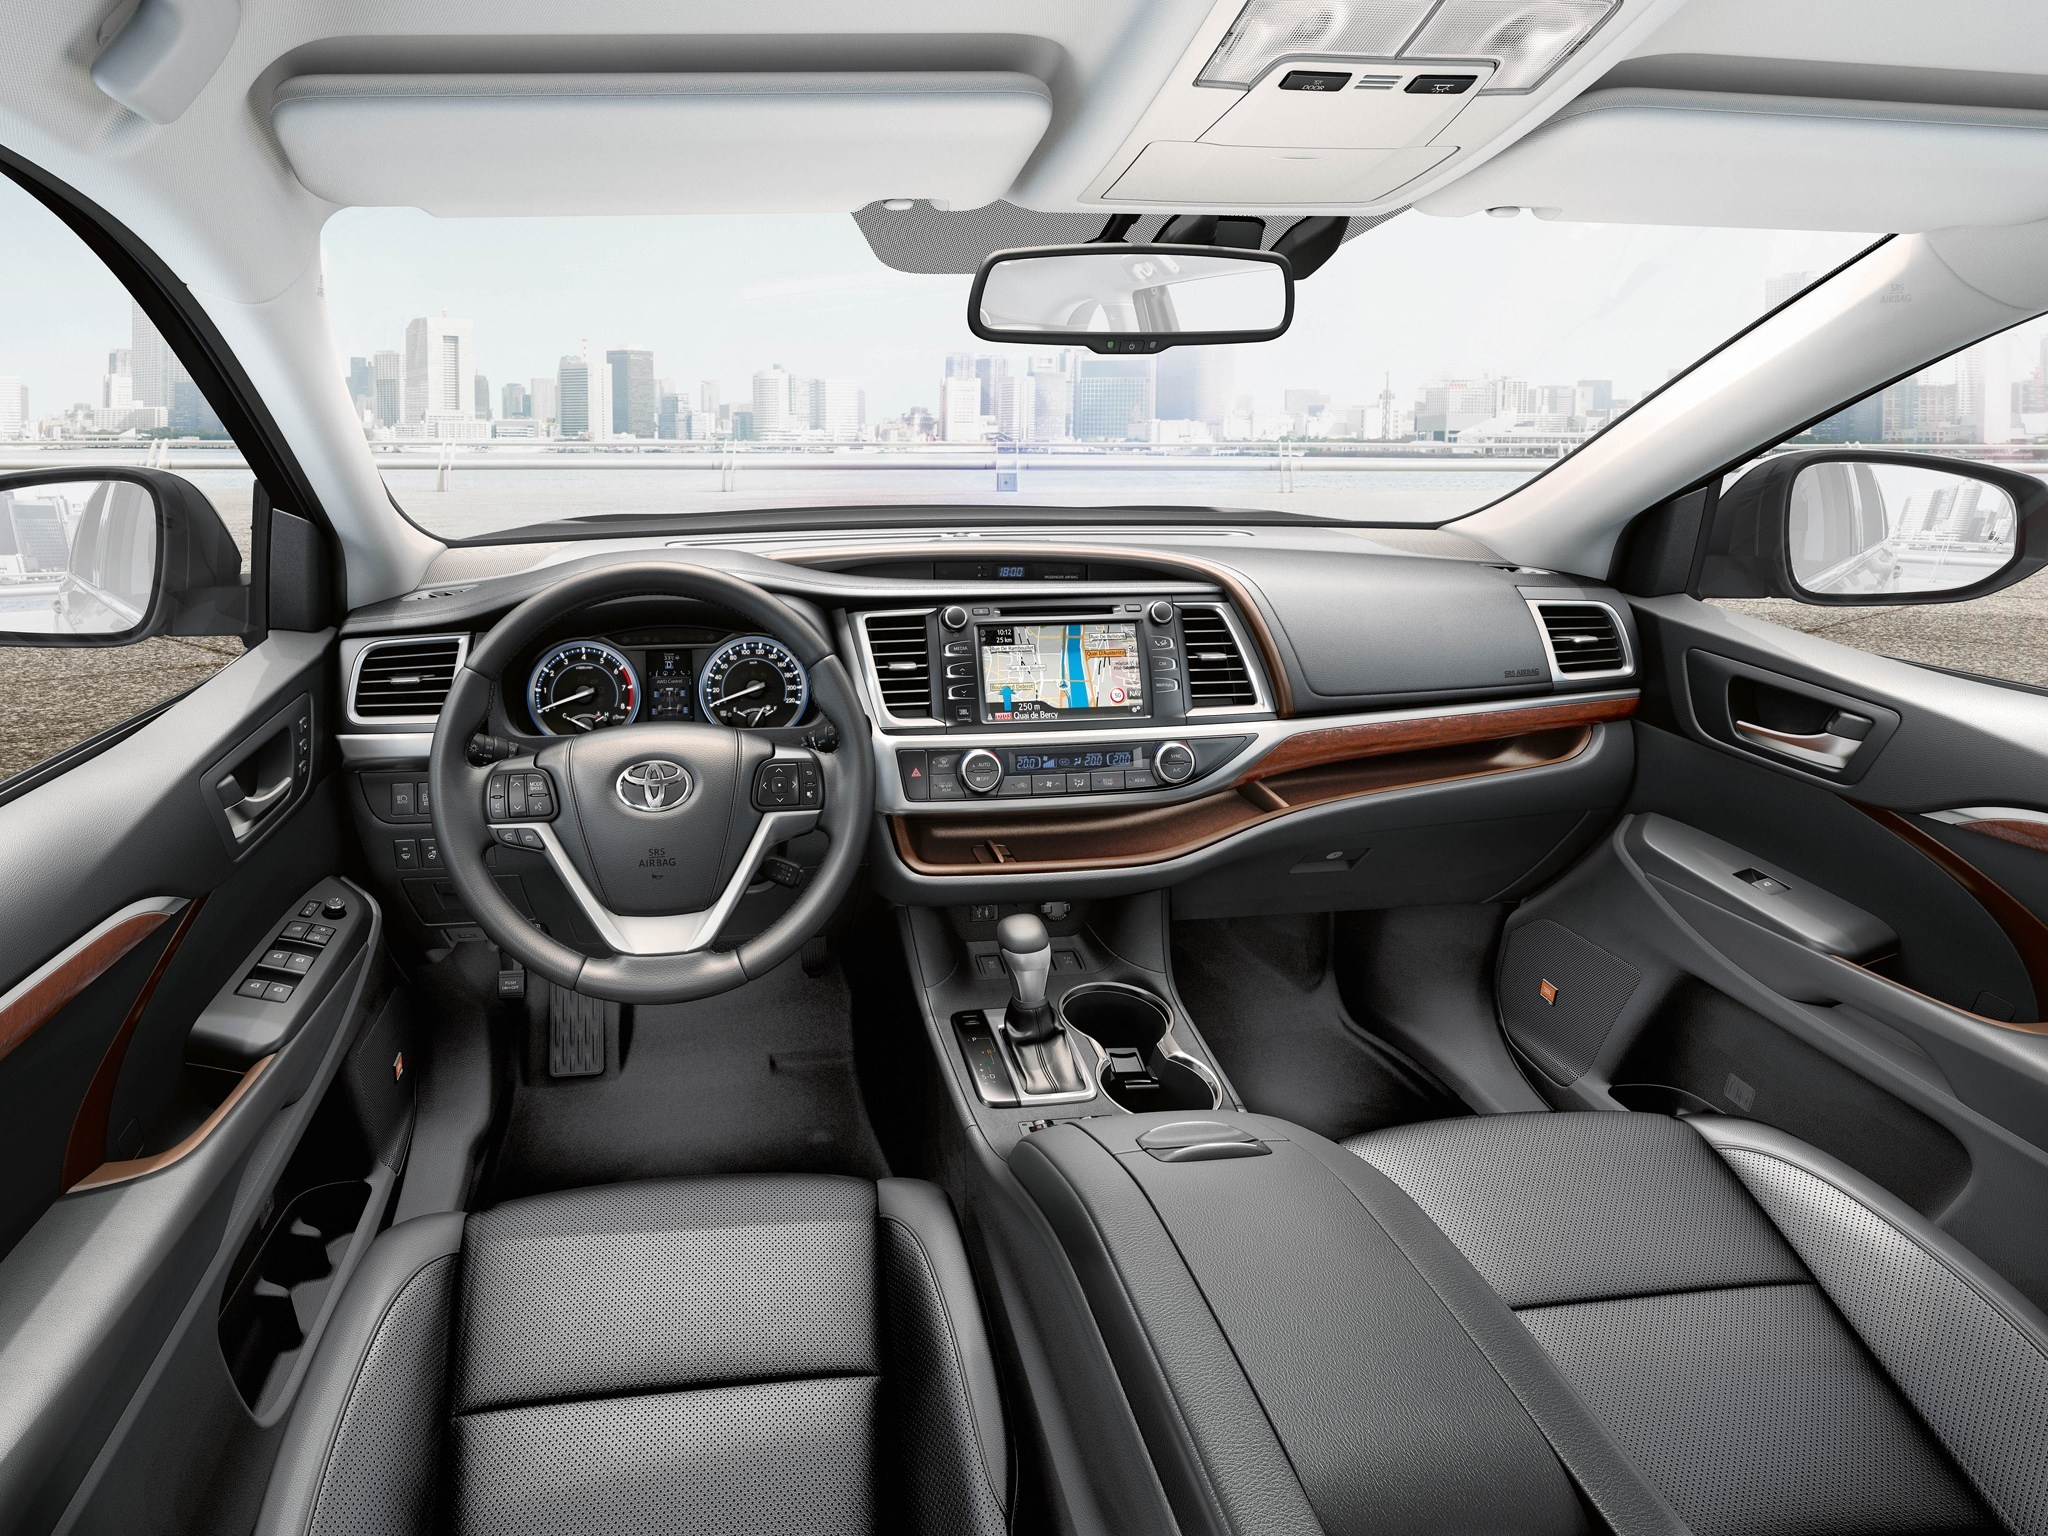 2018 Toyota Highlander interior changes